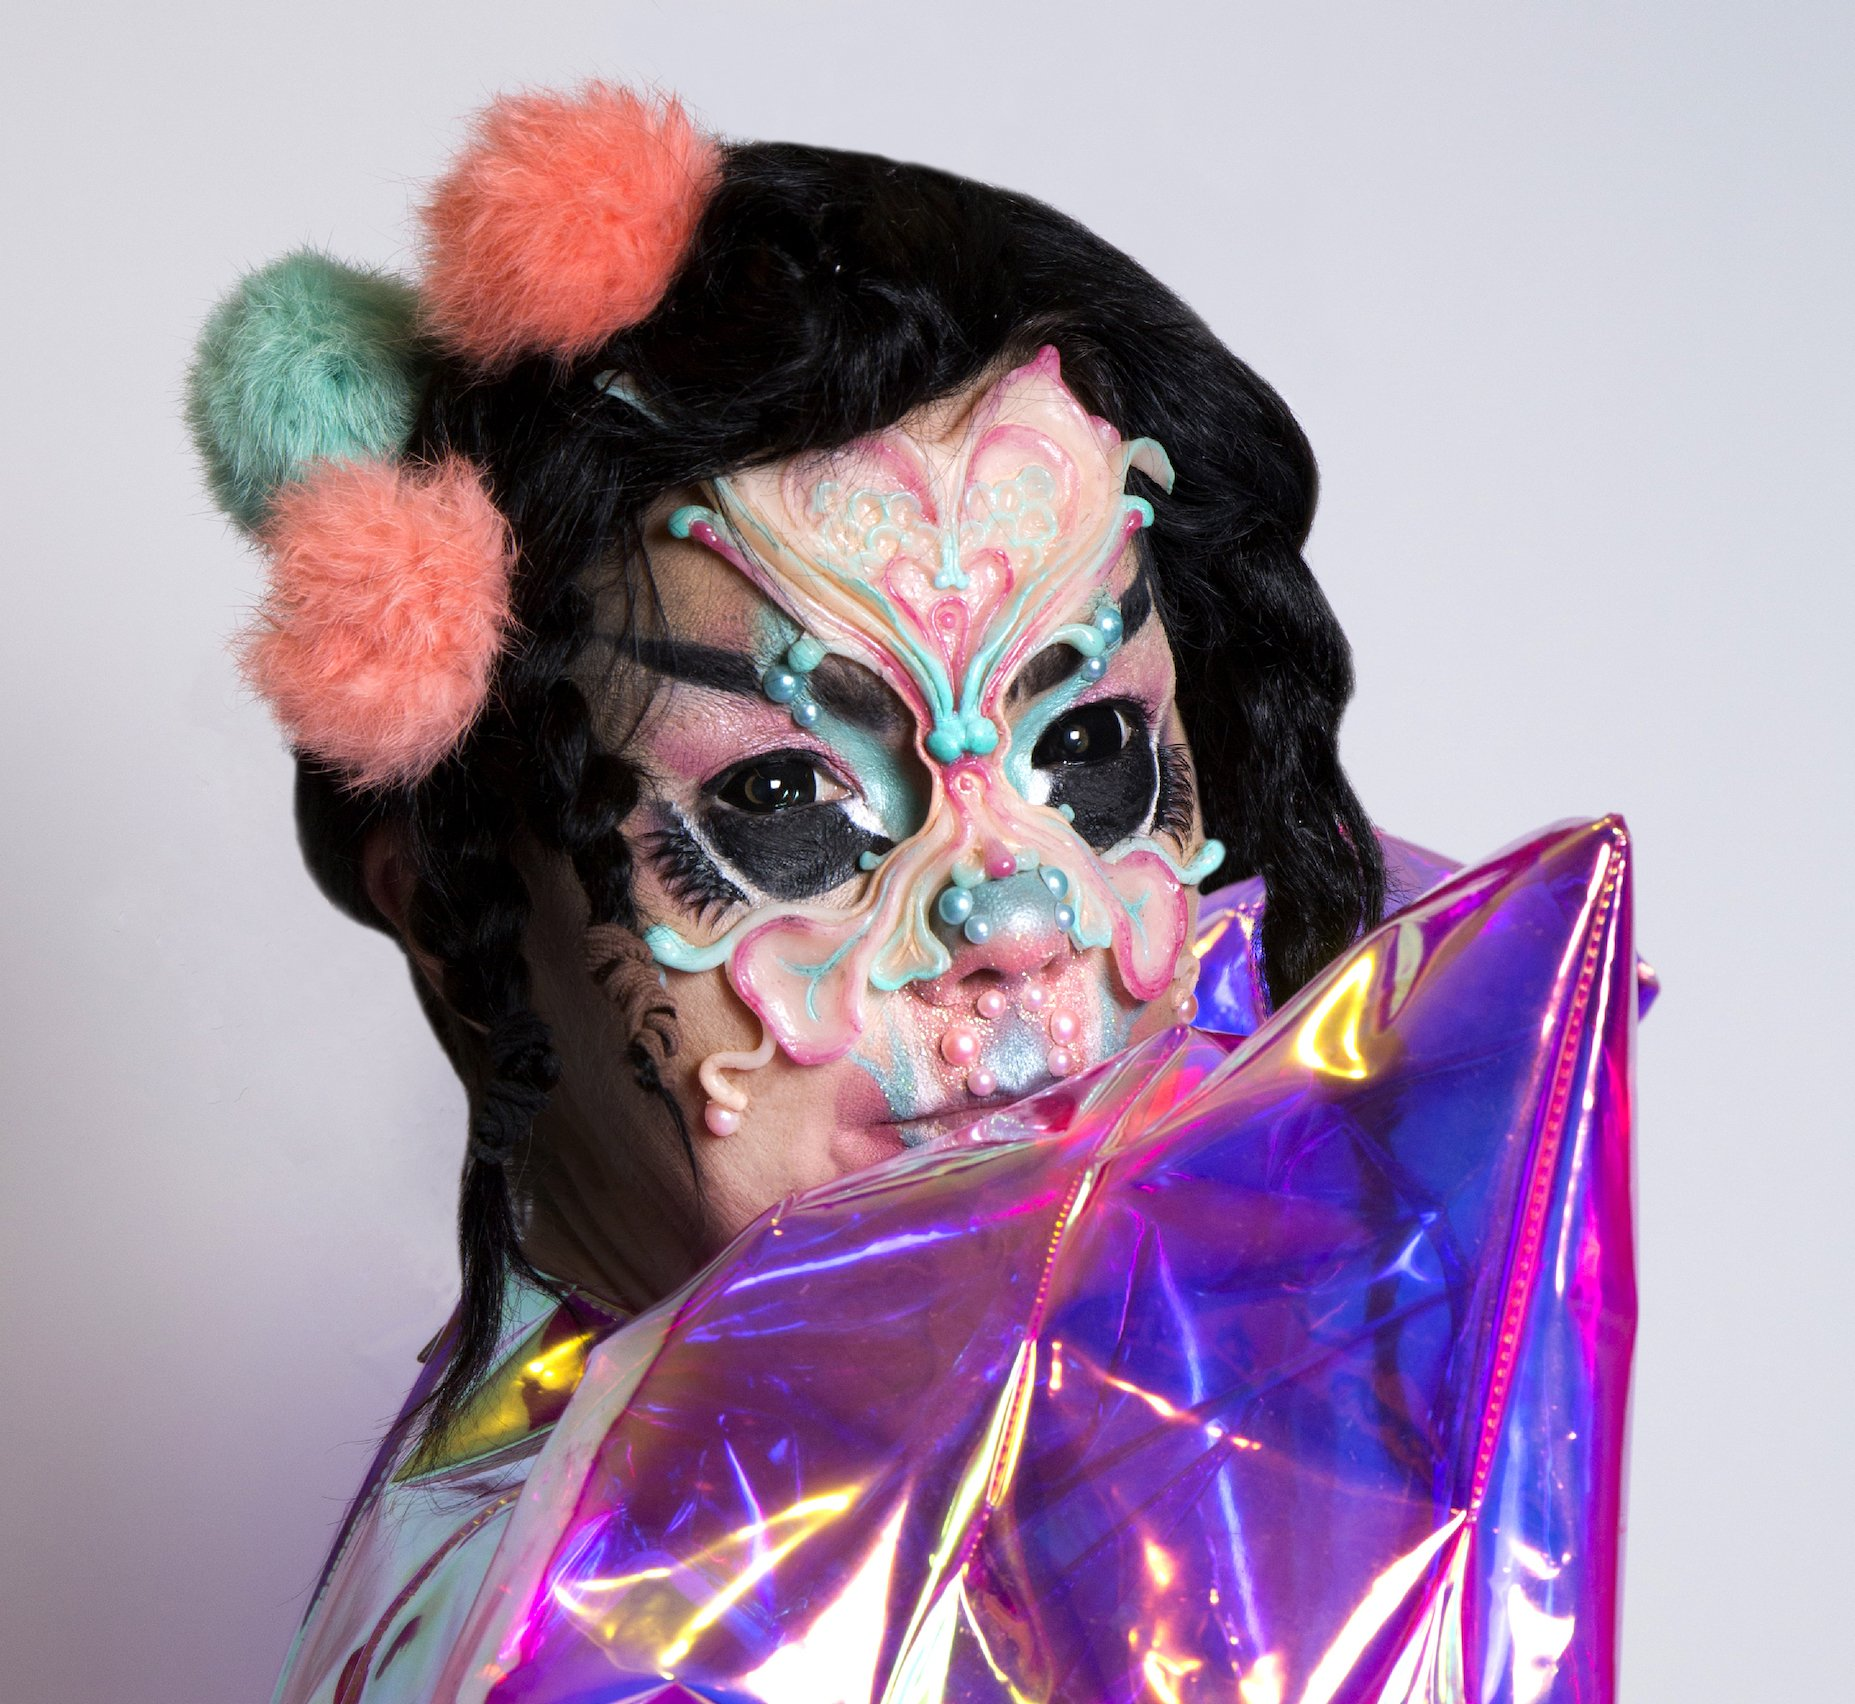 The Utopian: Björk On Loss, Moving On, Activism & Seeking Change